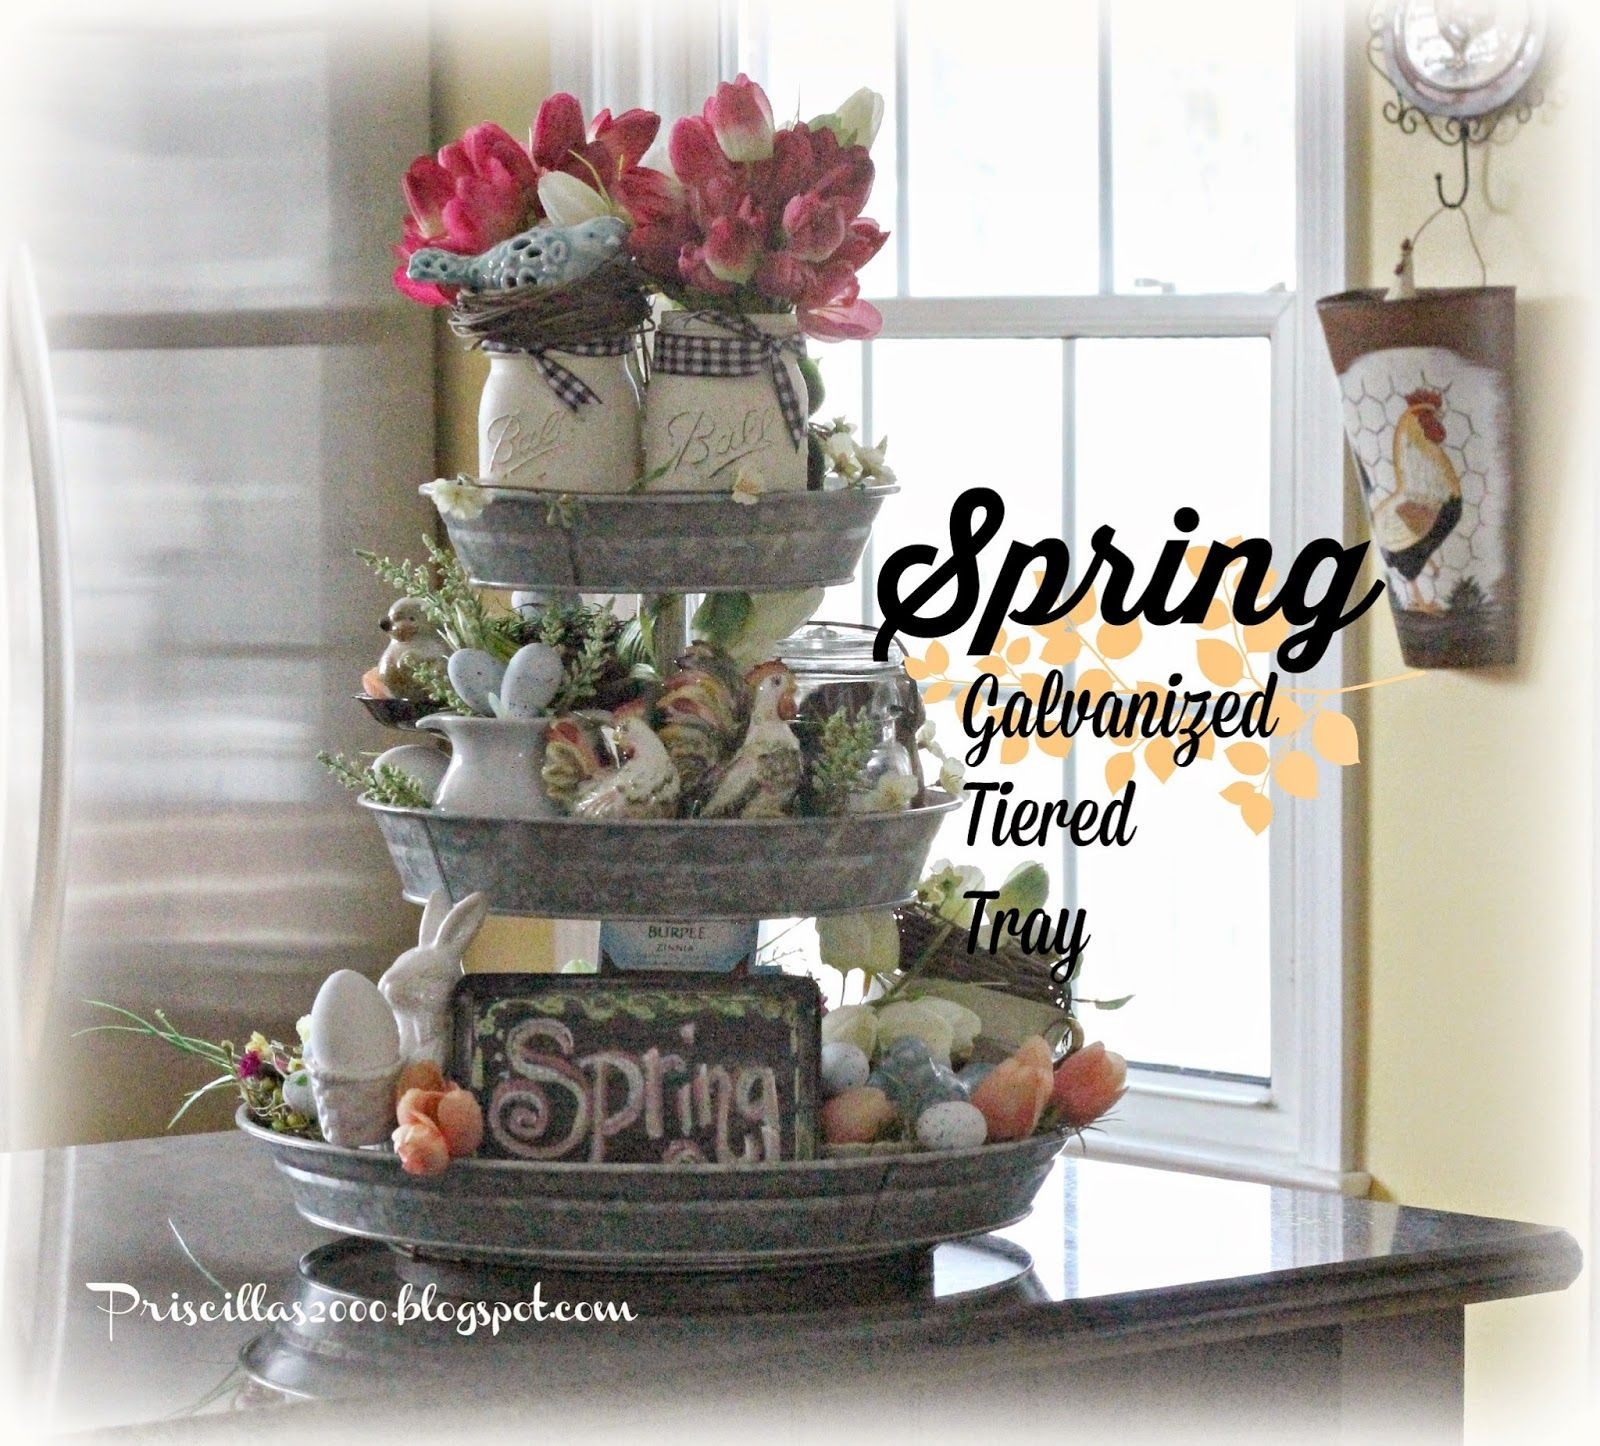 Good morning and happy weekend!  I have had my galvanized tiered tray ( from Sam's Club) for almost a year now.. I thought it would be f...